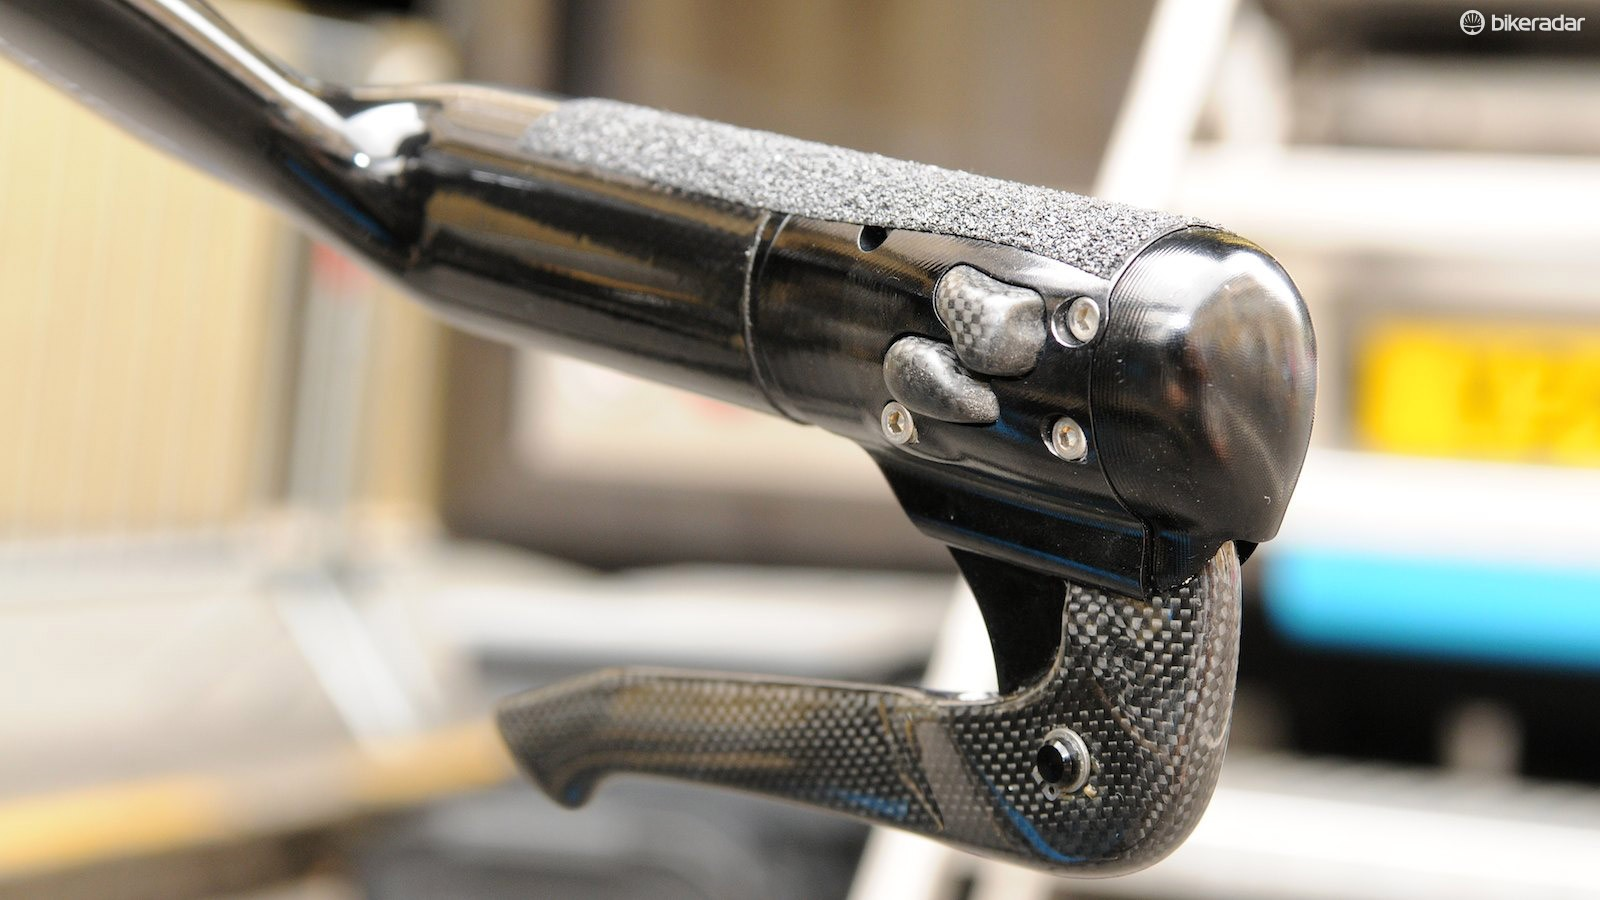 Team Sky's Pinarello Bolide comes with these specific electronic shifters and brake levers built in to the bars, leaving the team mechanics to strip the standard Di2 components of their workings and reattach to the bike - not a job for your average home mechanic!